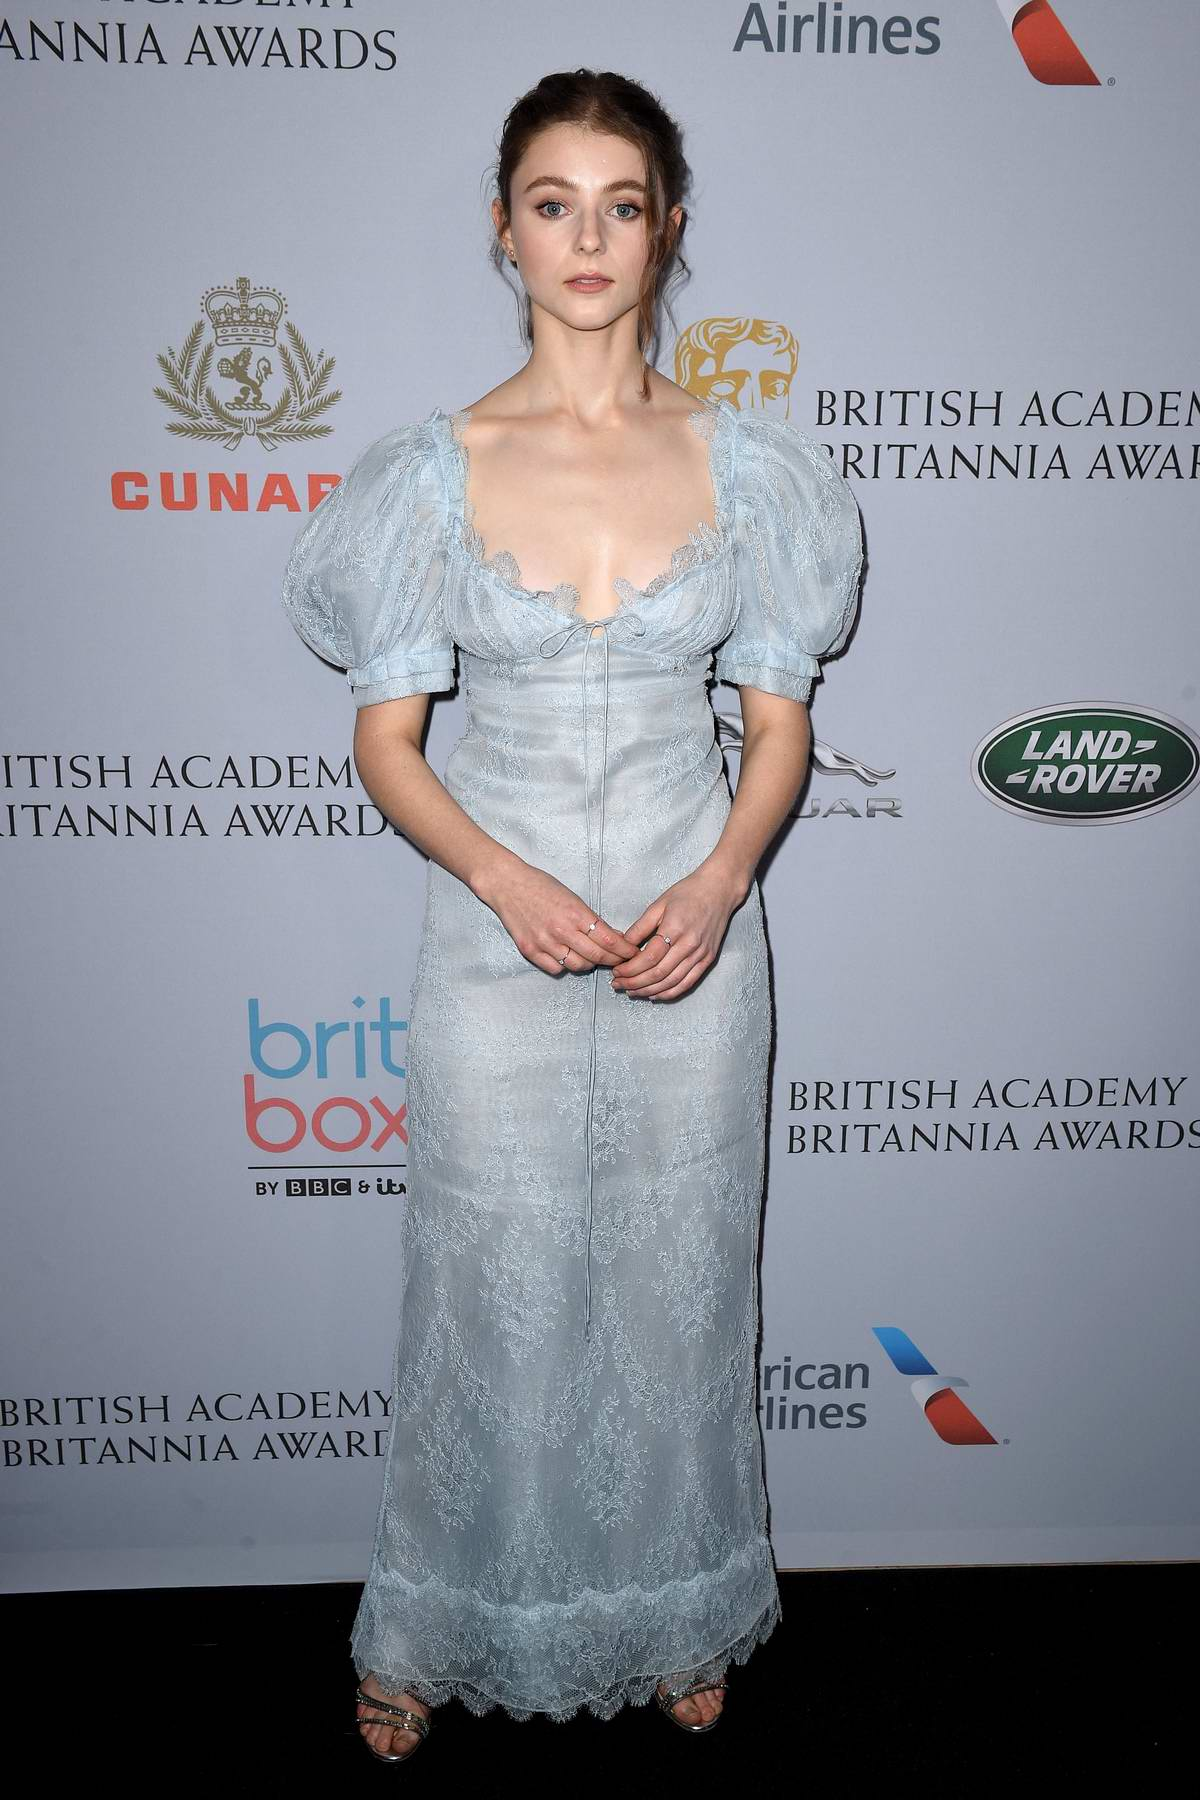 Thomasin McKenzie attends the British Academy Britannia Awards 2019 in Beverly Hills, California